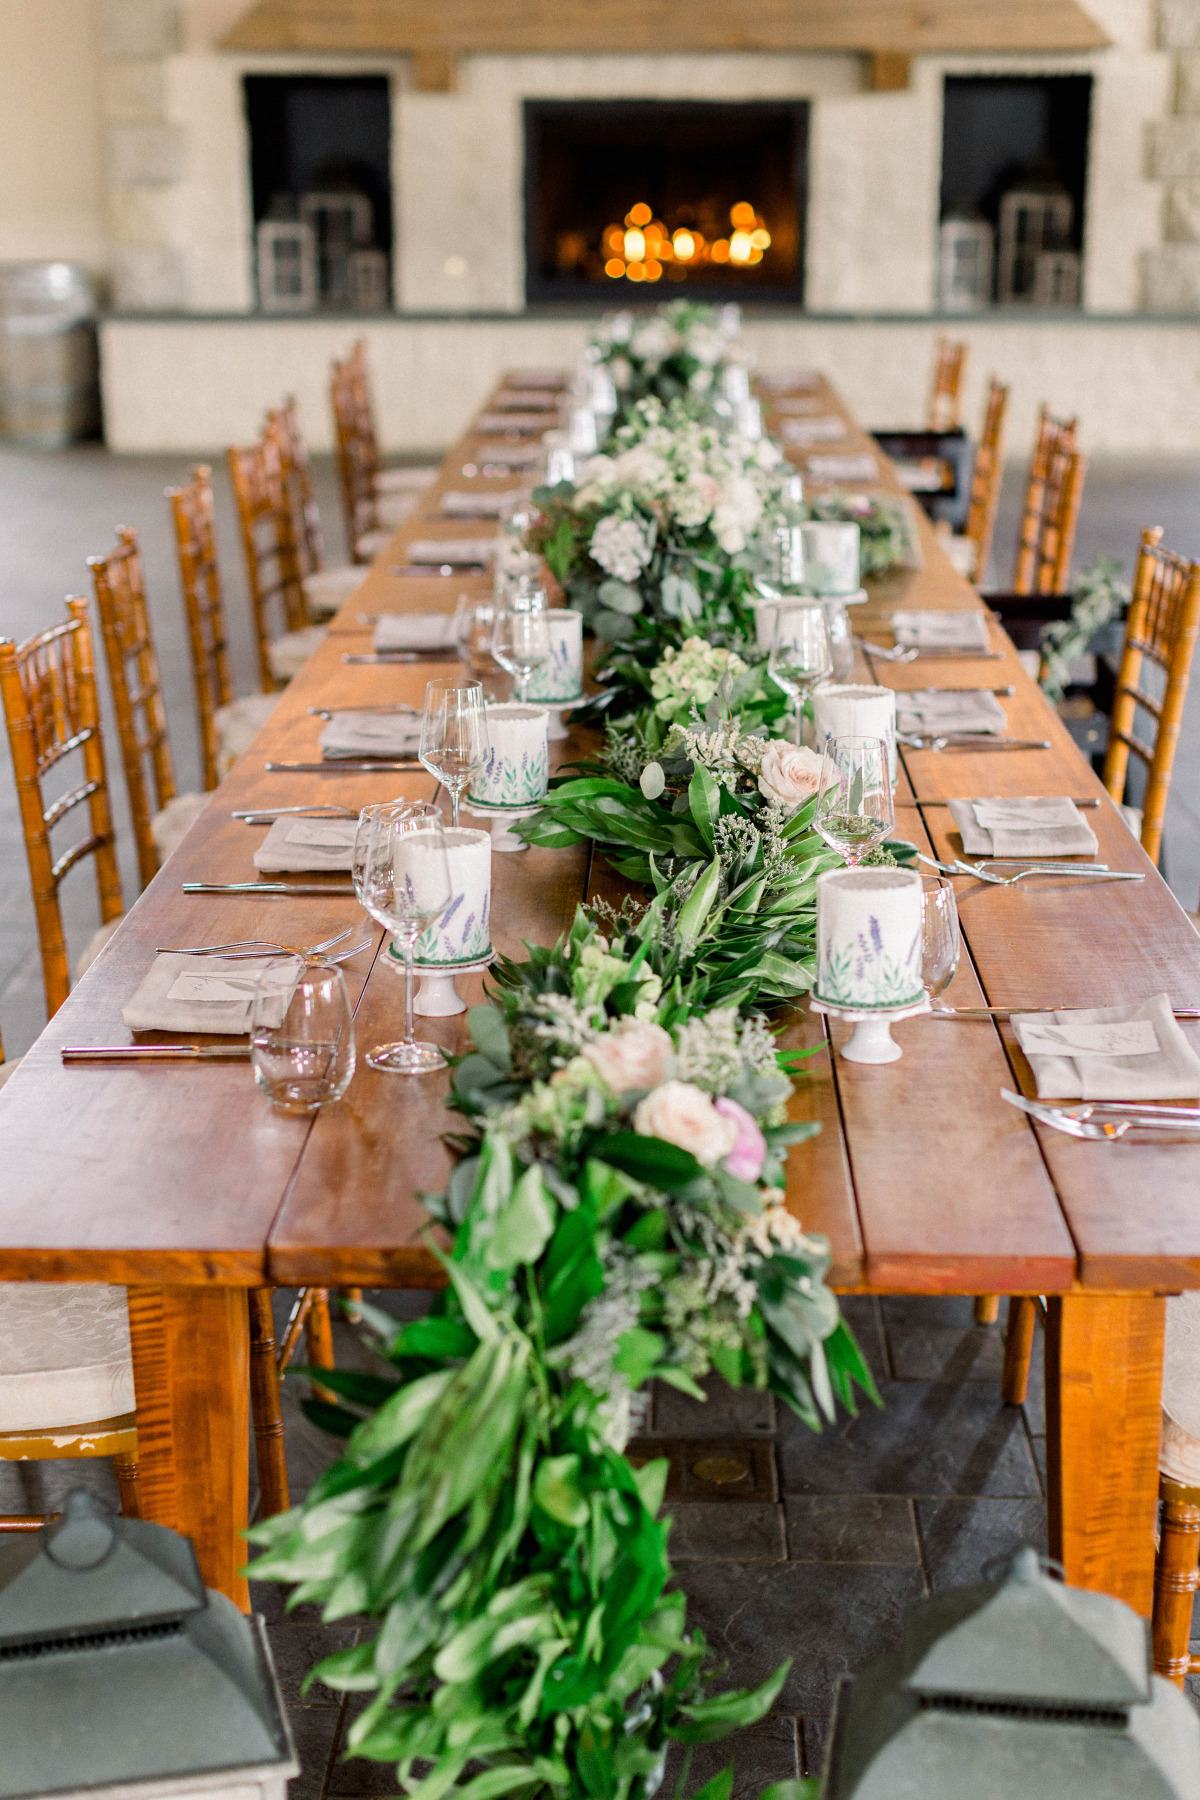 Greenery and floral centerpiece